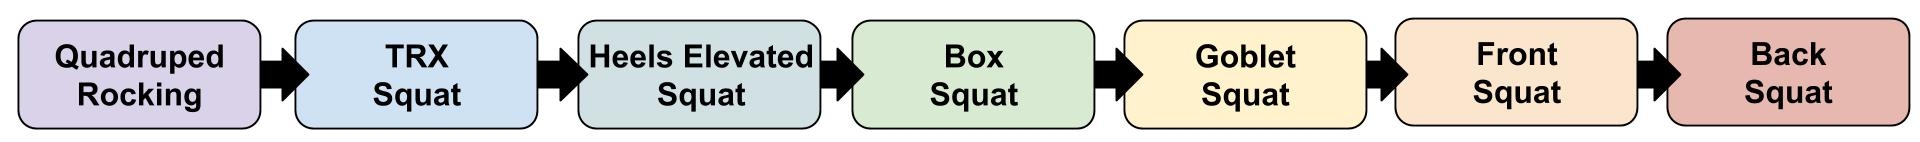 Example Squat Progression = Unloaded > Assisted > Unassisted > Loaded